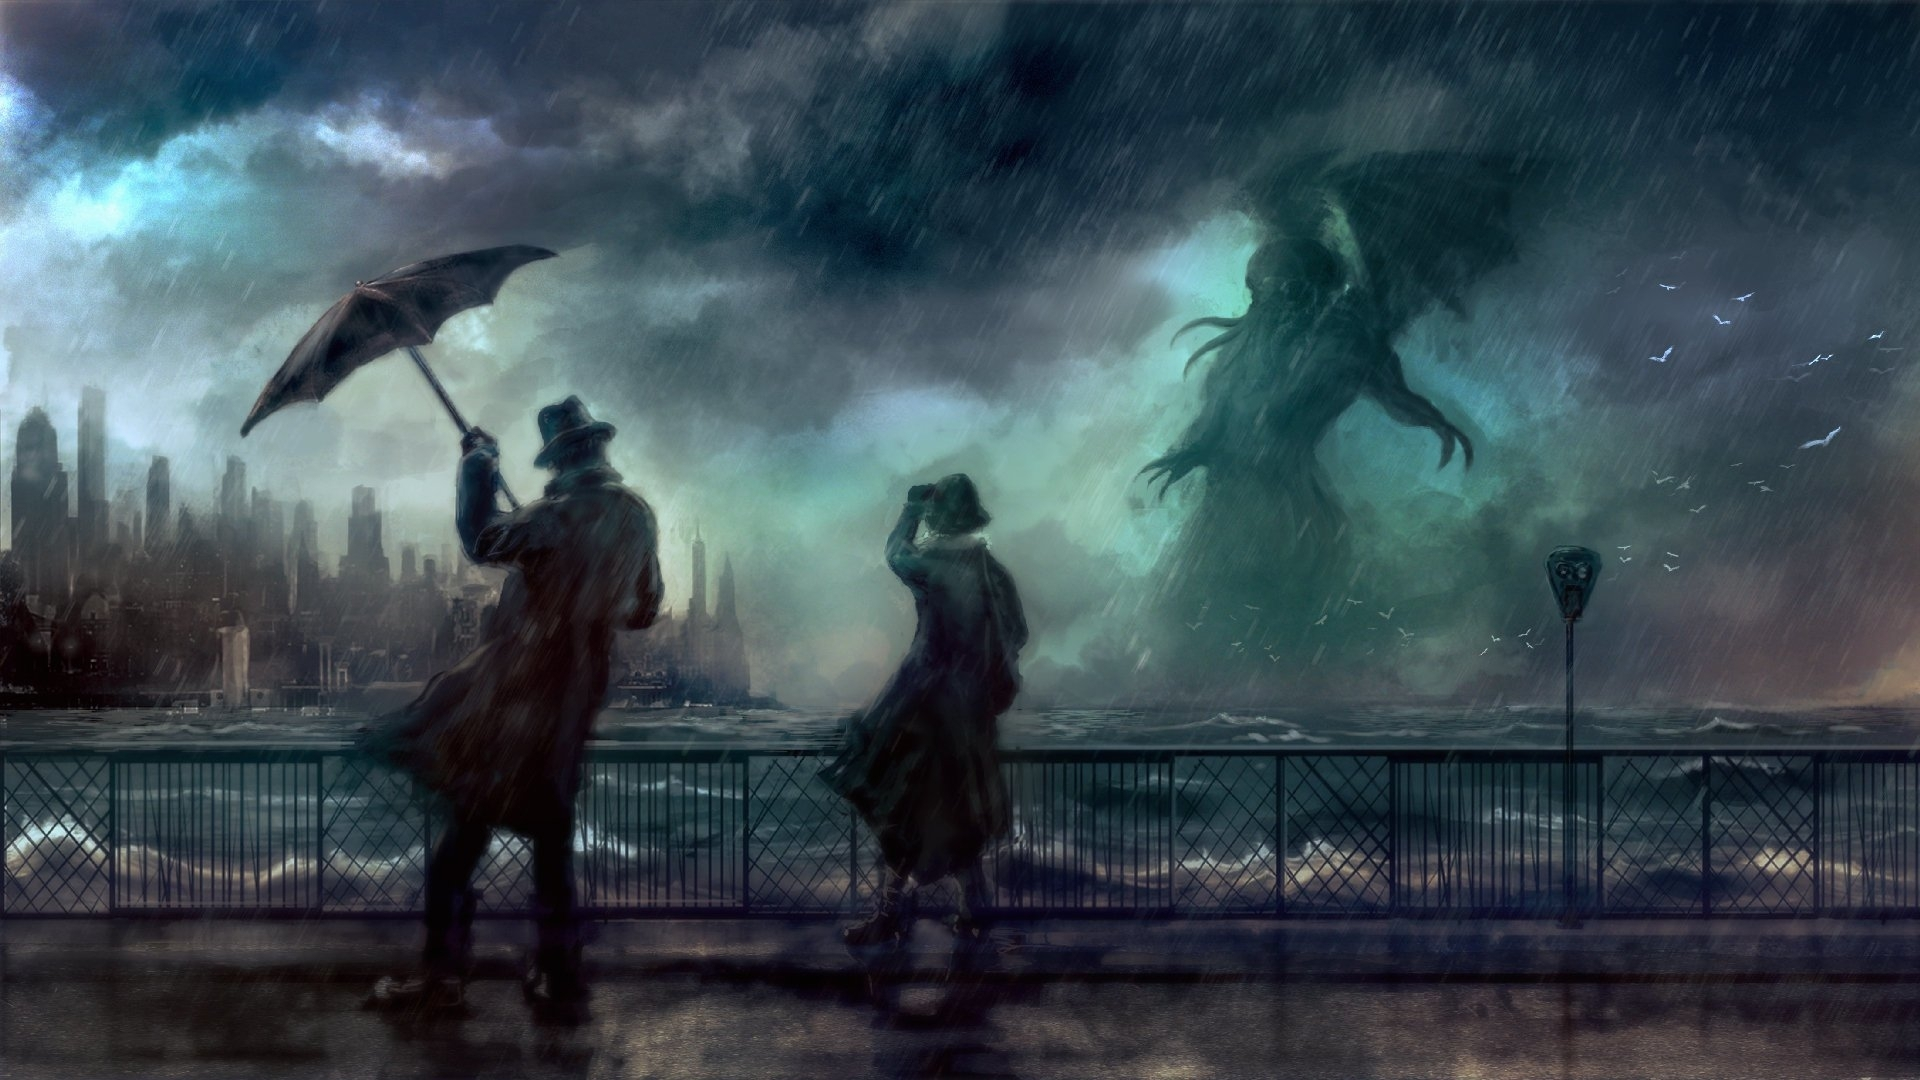 Title : 10 h. p. lovecraft hd wallpapers | background images - wallpaper abyss. Dimension : 1920 x 1080. File Type : JPG/JPEG